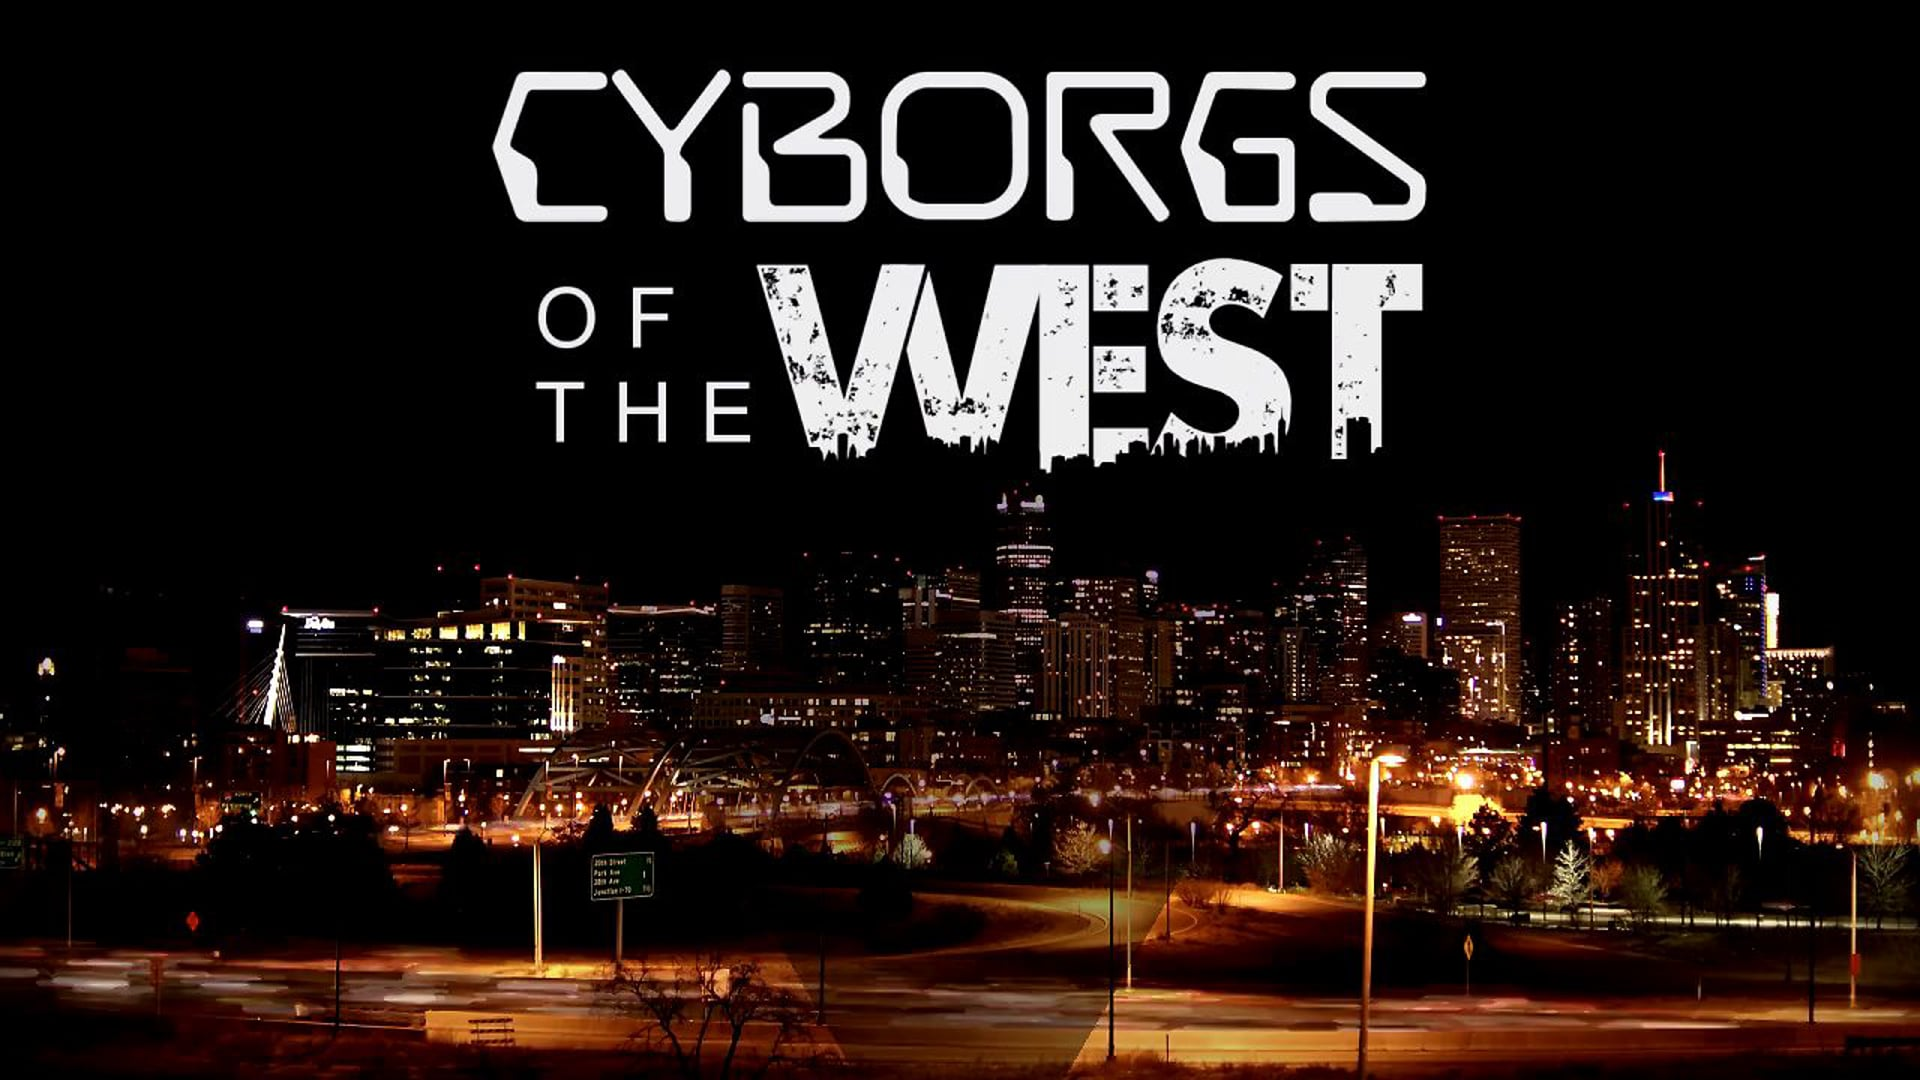 CYBORGS OF THE WEST /// The Effects of Personal Devices on Human Life (Feat. Tyrone Davies)